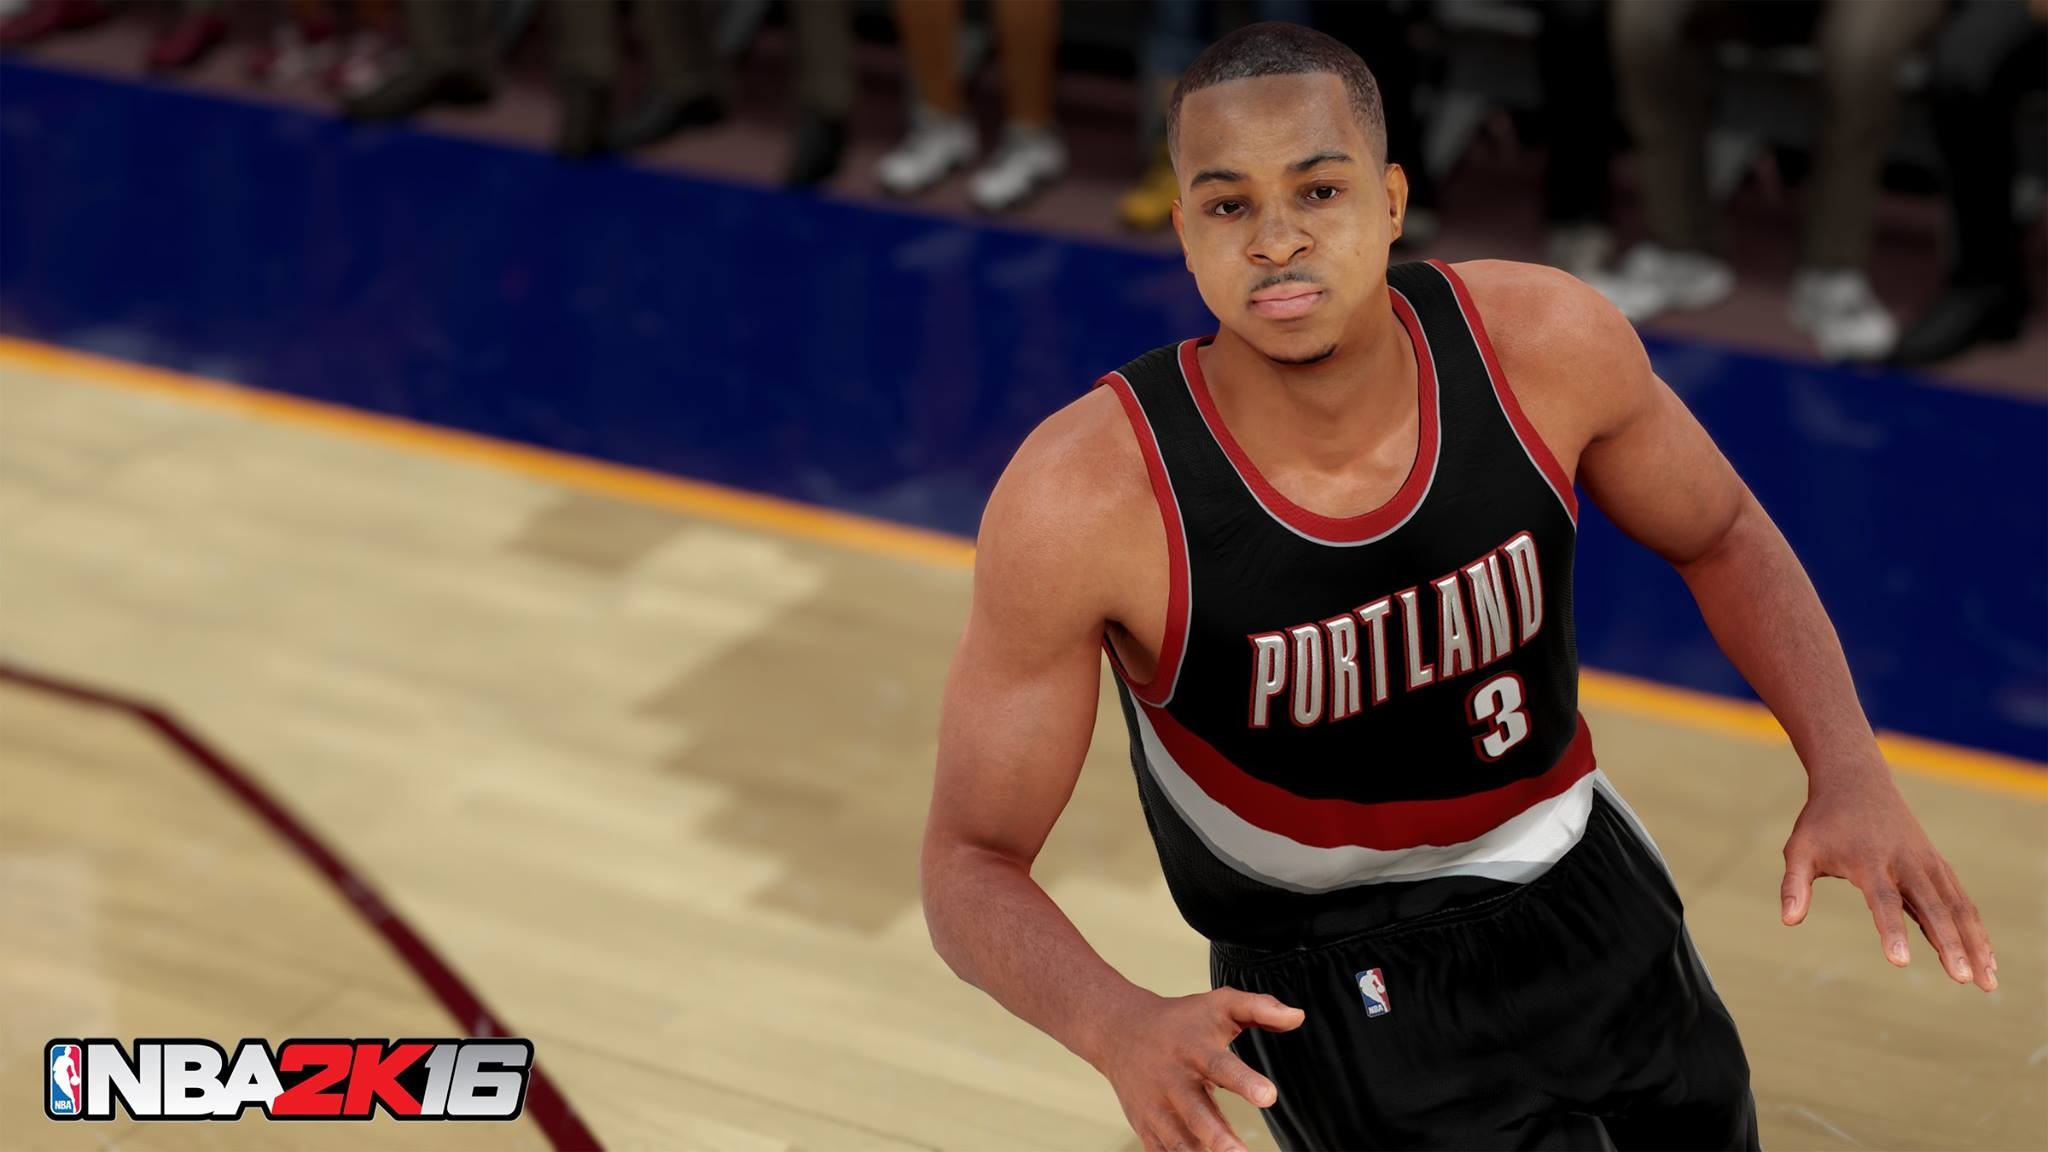 Image result for nba 2k16 screenshots